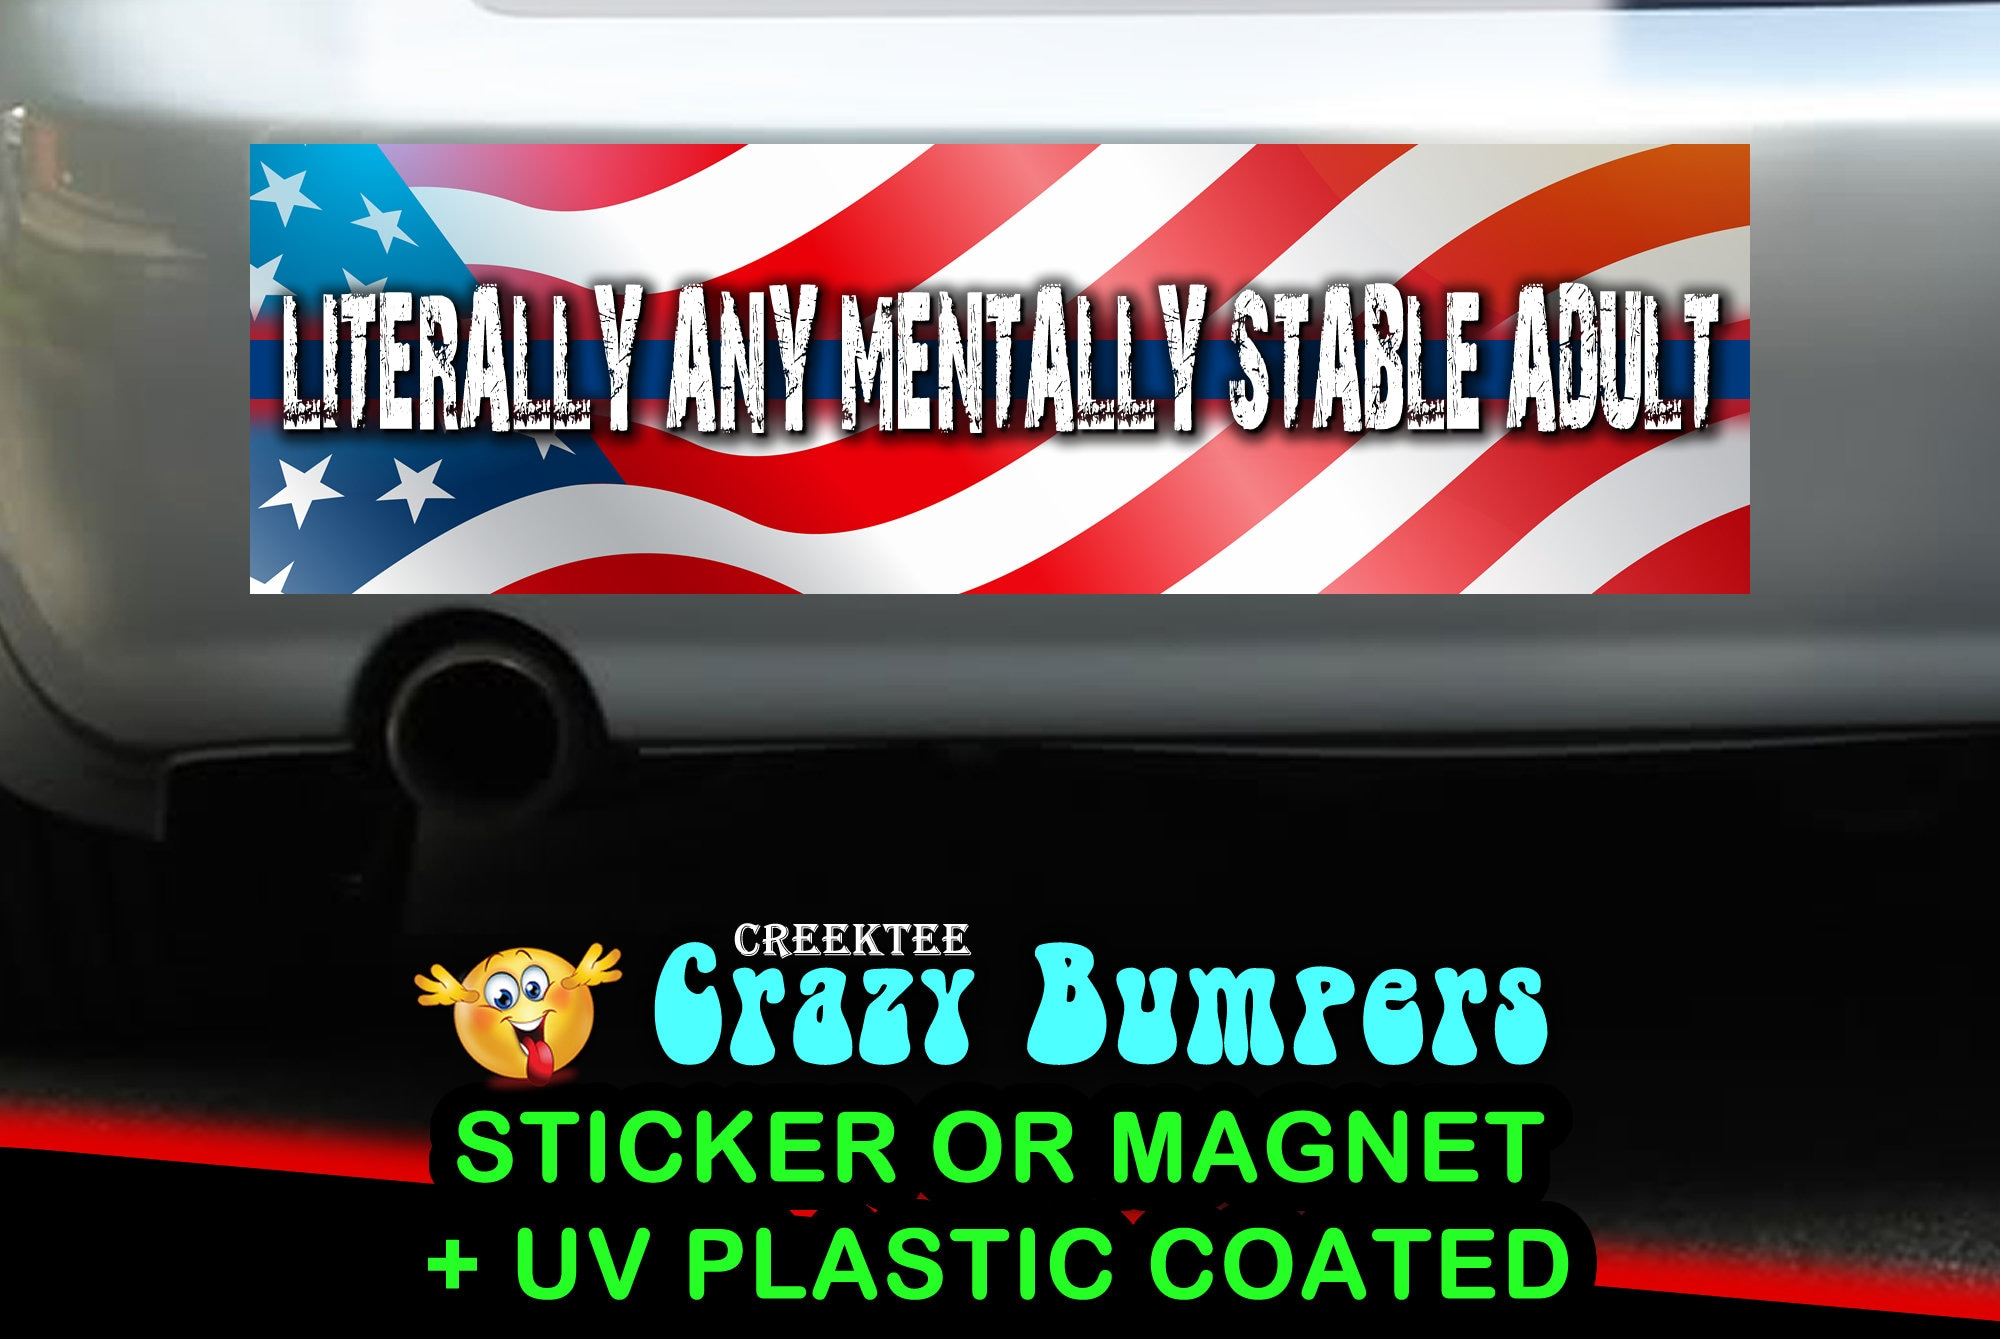 $9.74 - Literally Any Mentally Stable Adult 10 x 3 Bumper Sticker or Magnetic Bumper Sticker Available